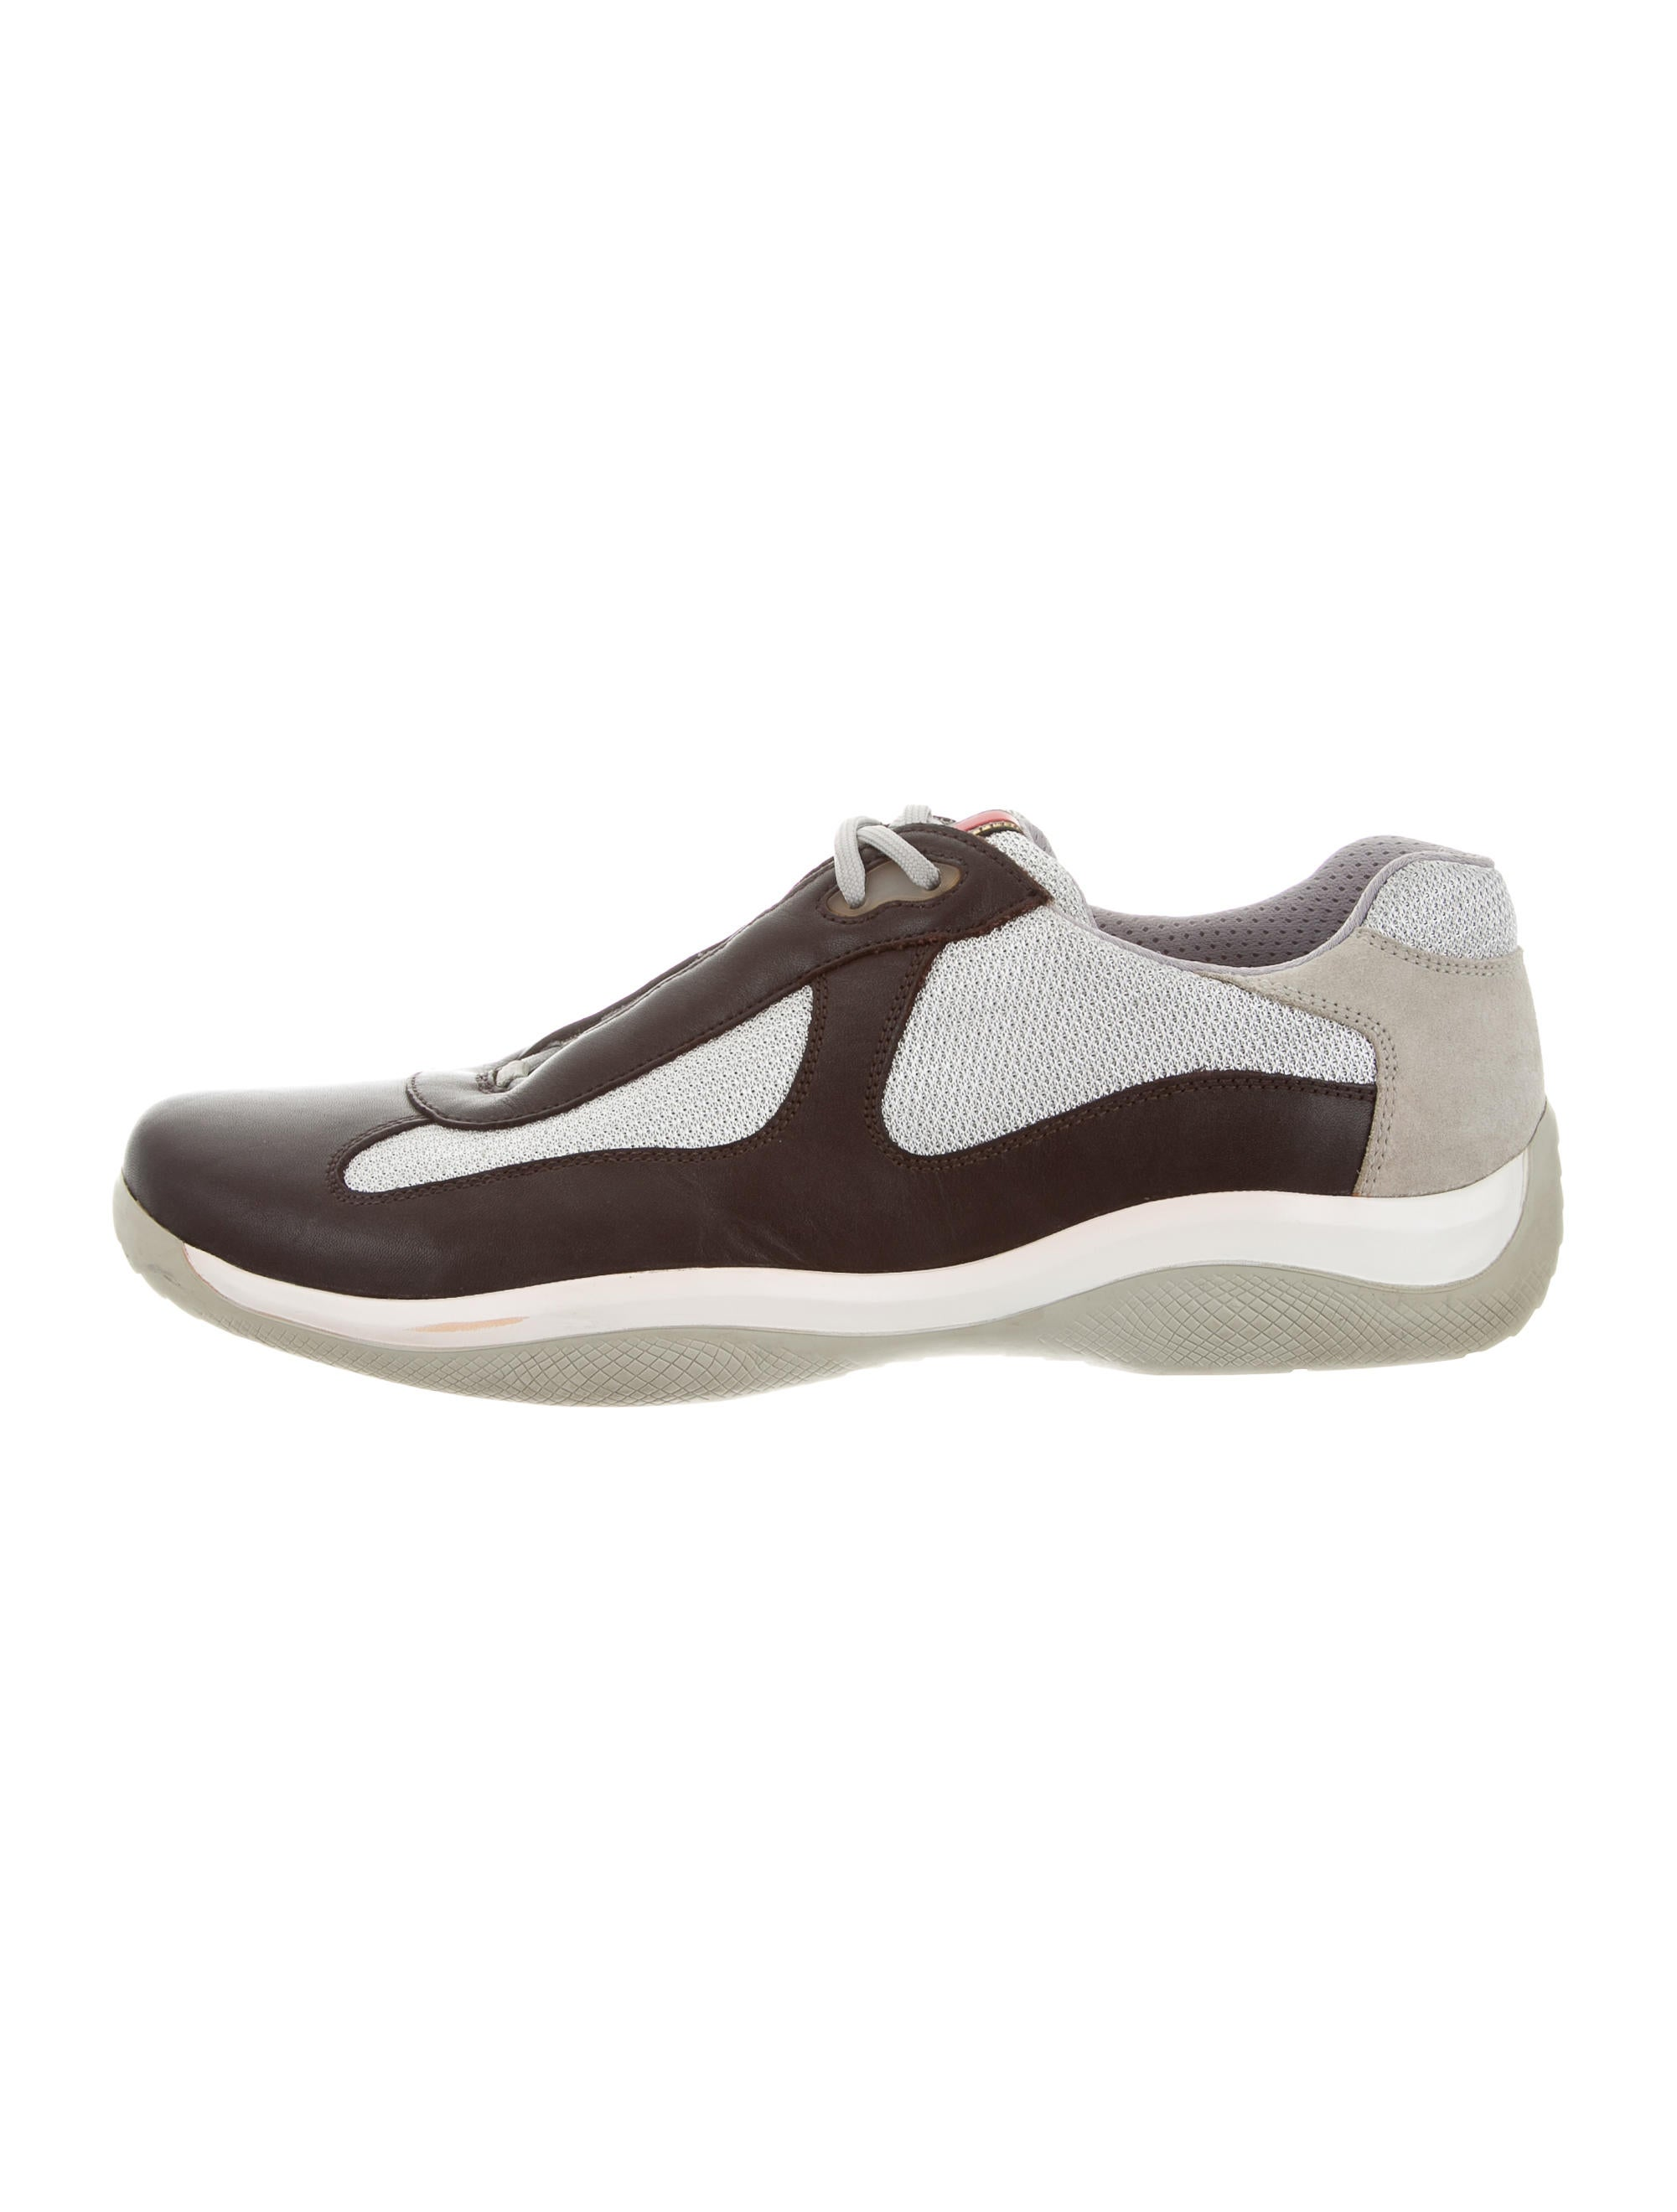 Prada Sport Round-Toe Low-Top Sneakers recommend sale online 100% authentic sale online rFU3BjLz